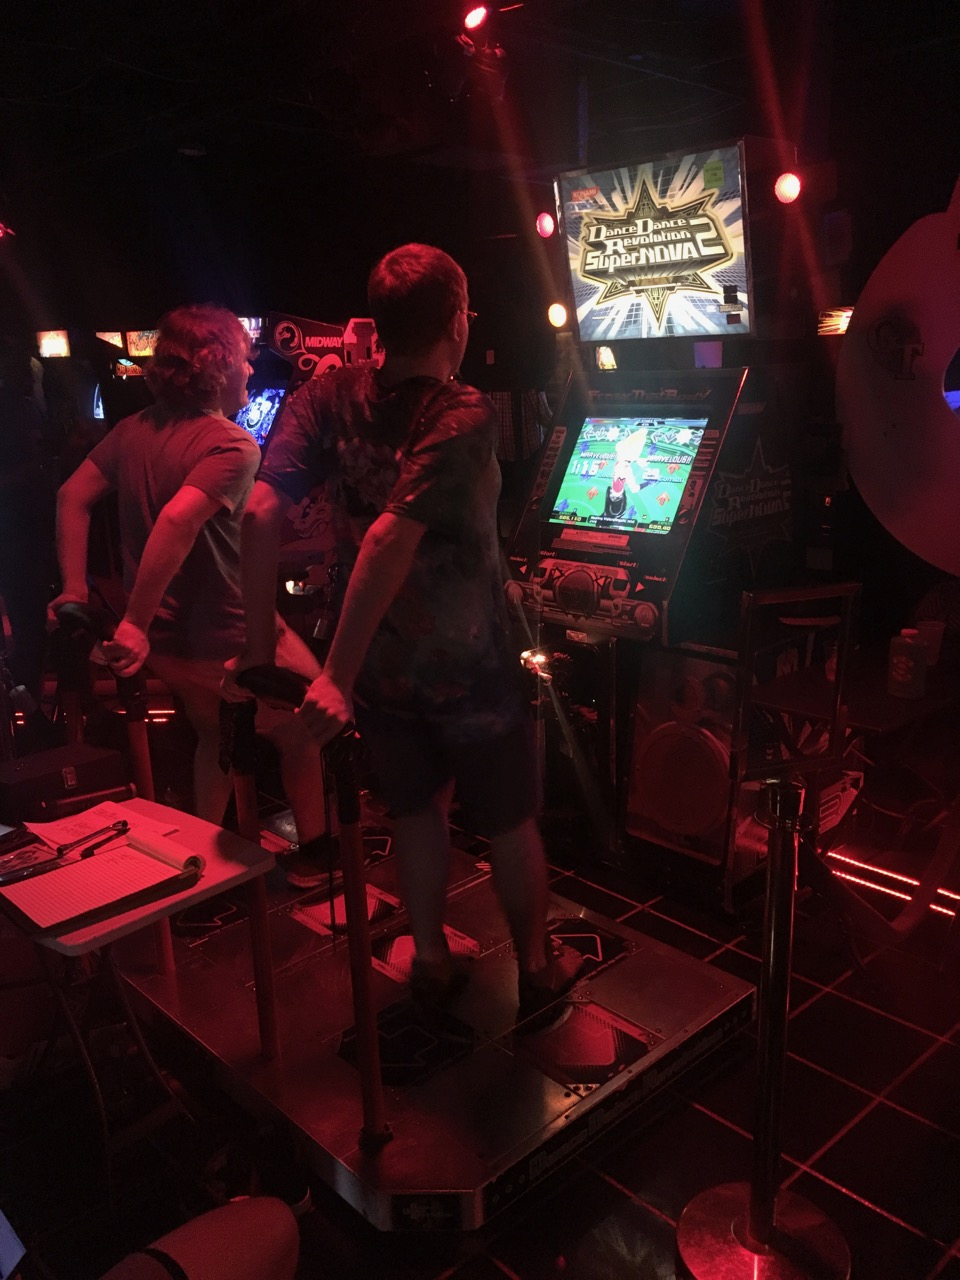 Two young men playing 'Dance Dance Revolution', side-by-side.